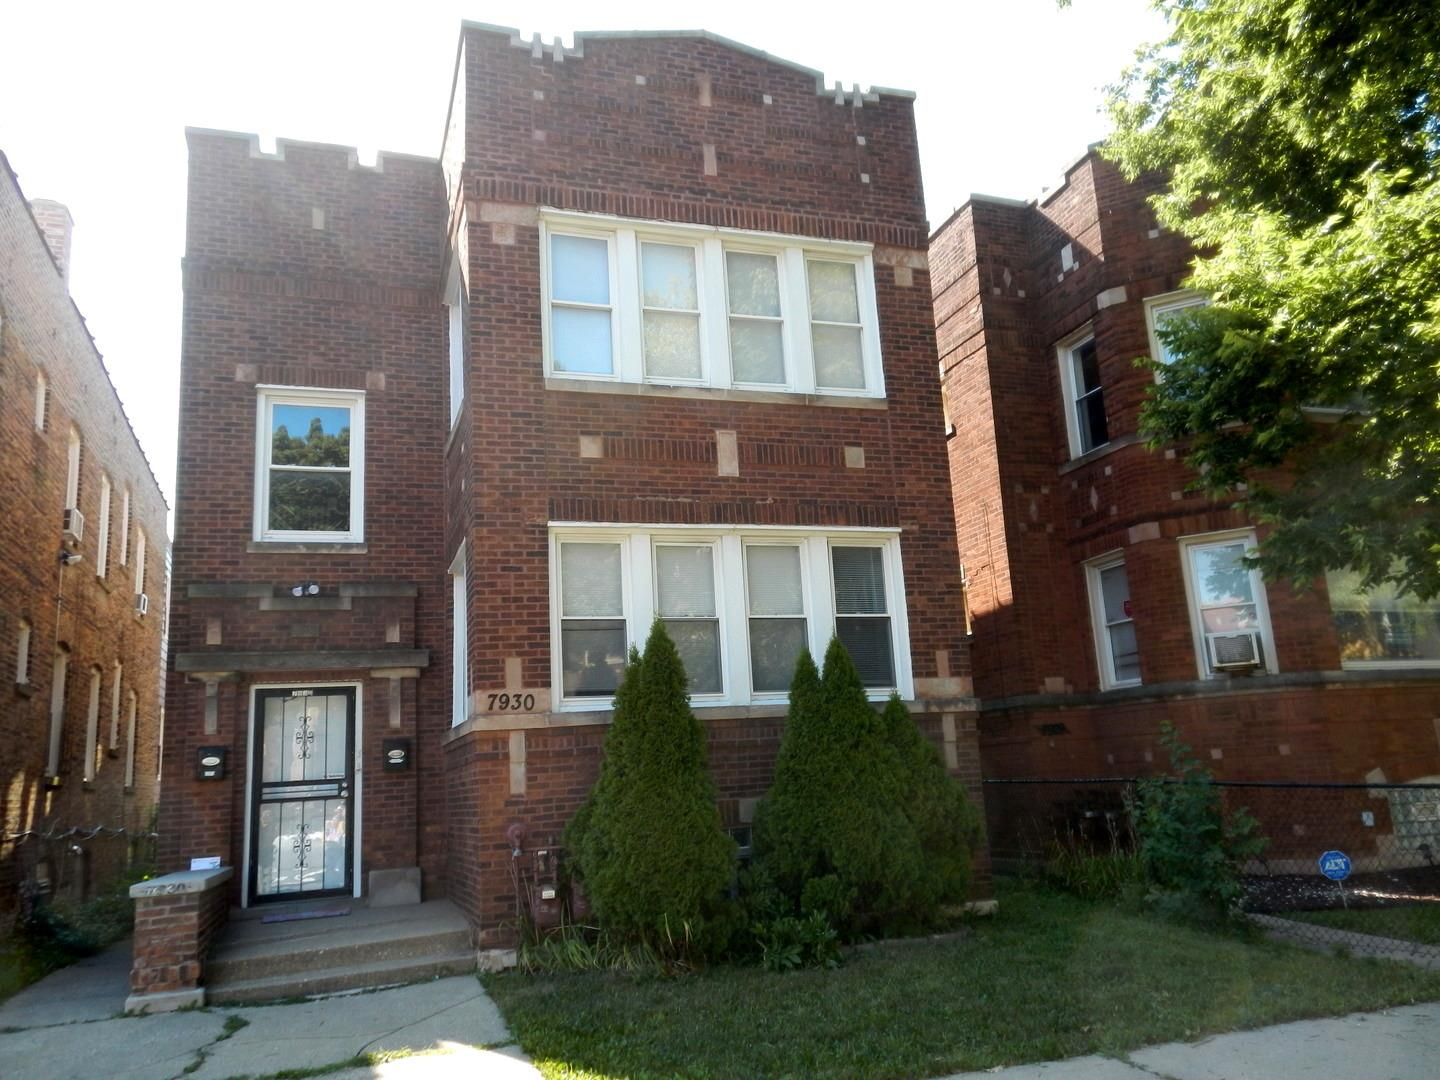 7930 S Hermitage Avenue, Chicago, IL 60620 - #: 10820699